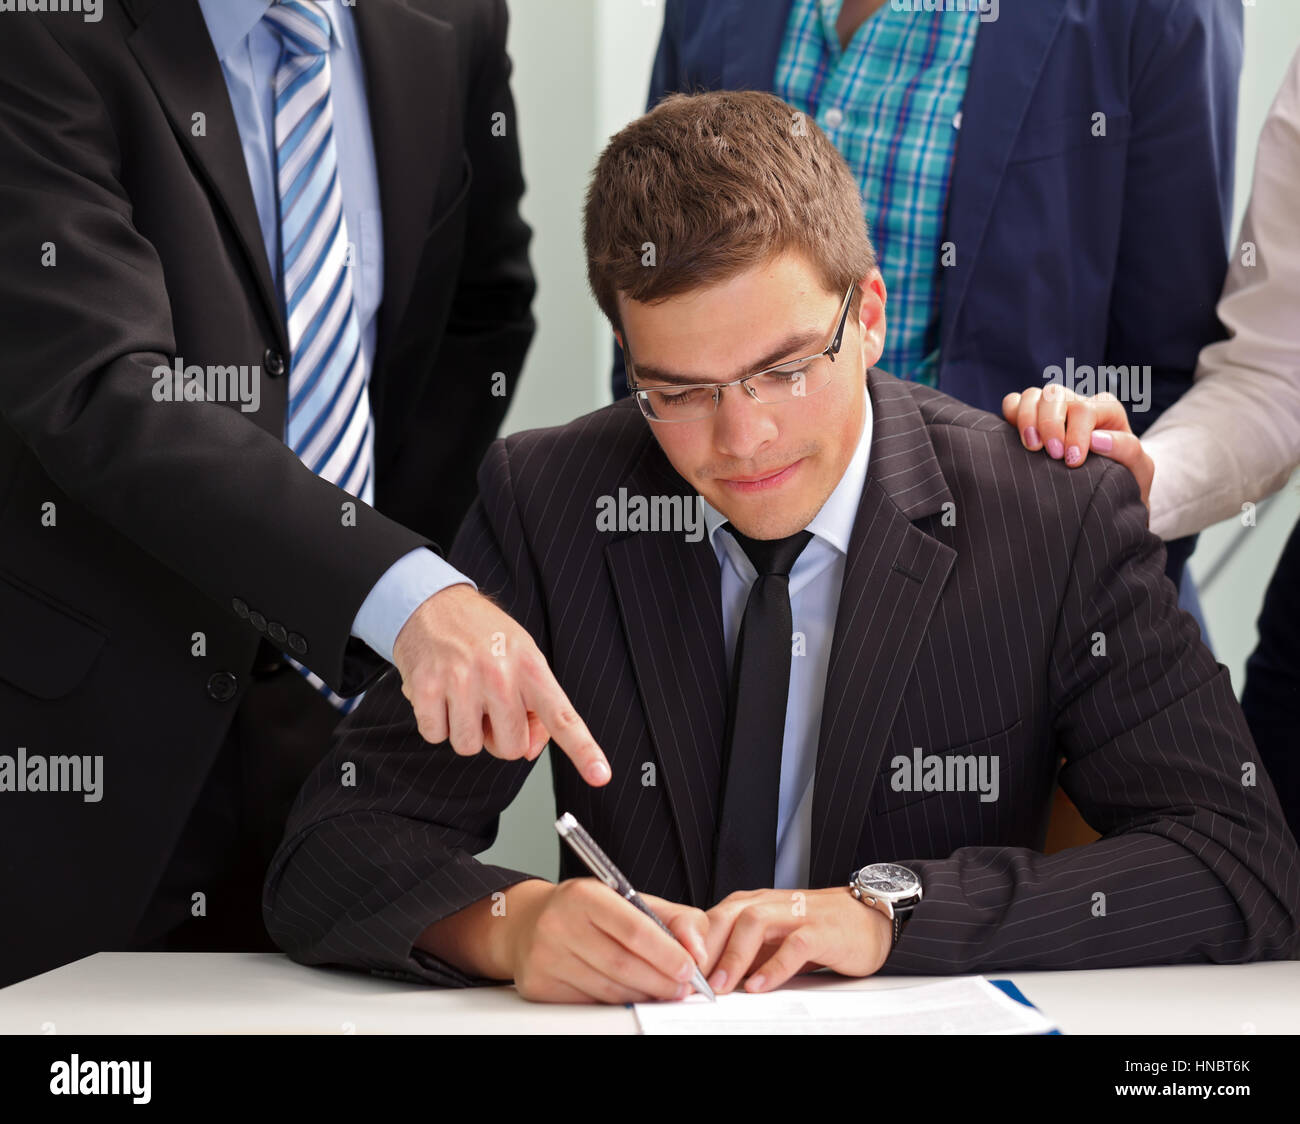 Confident businessman signing the contract in front of his team - Stock Image